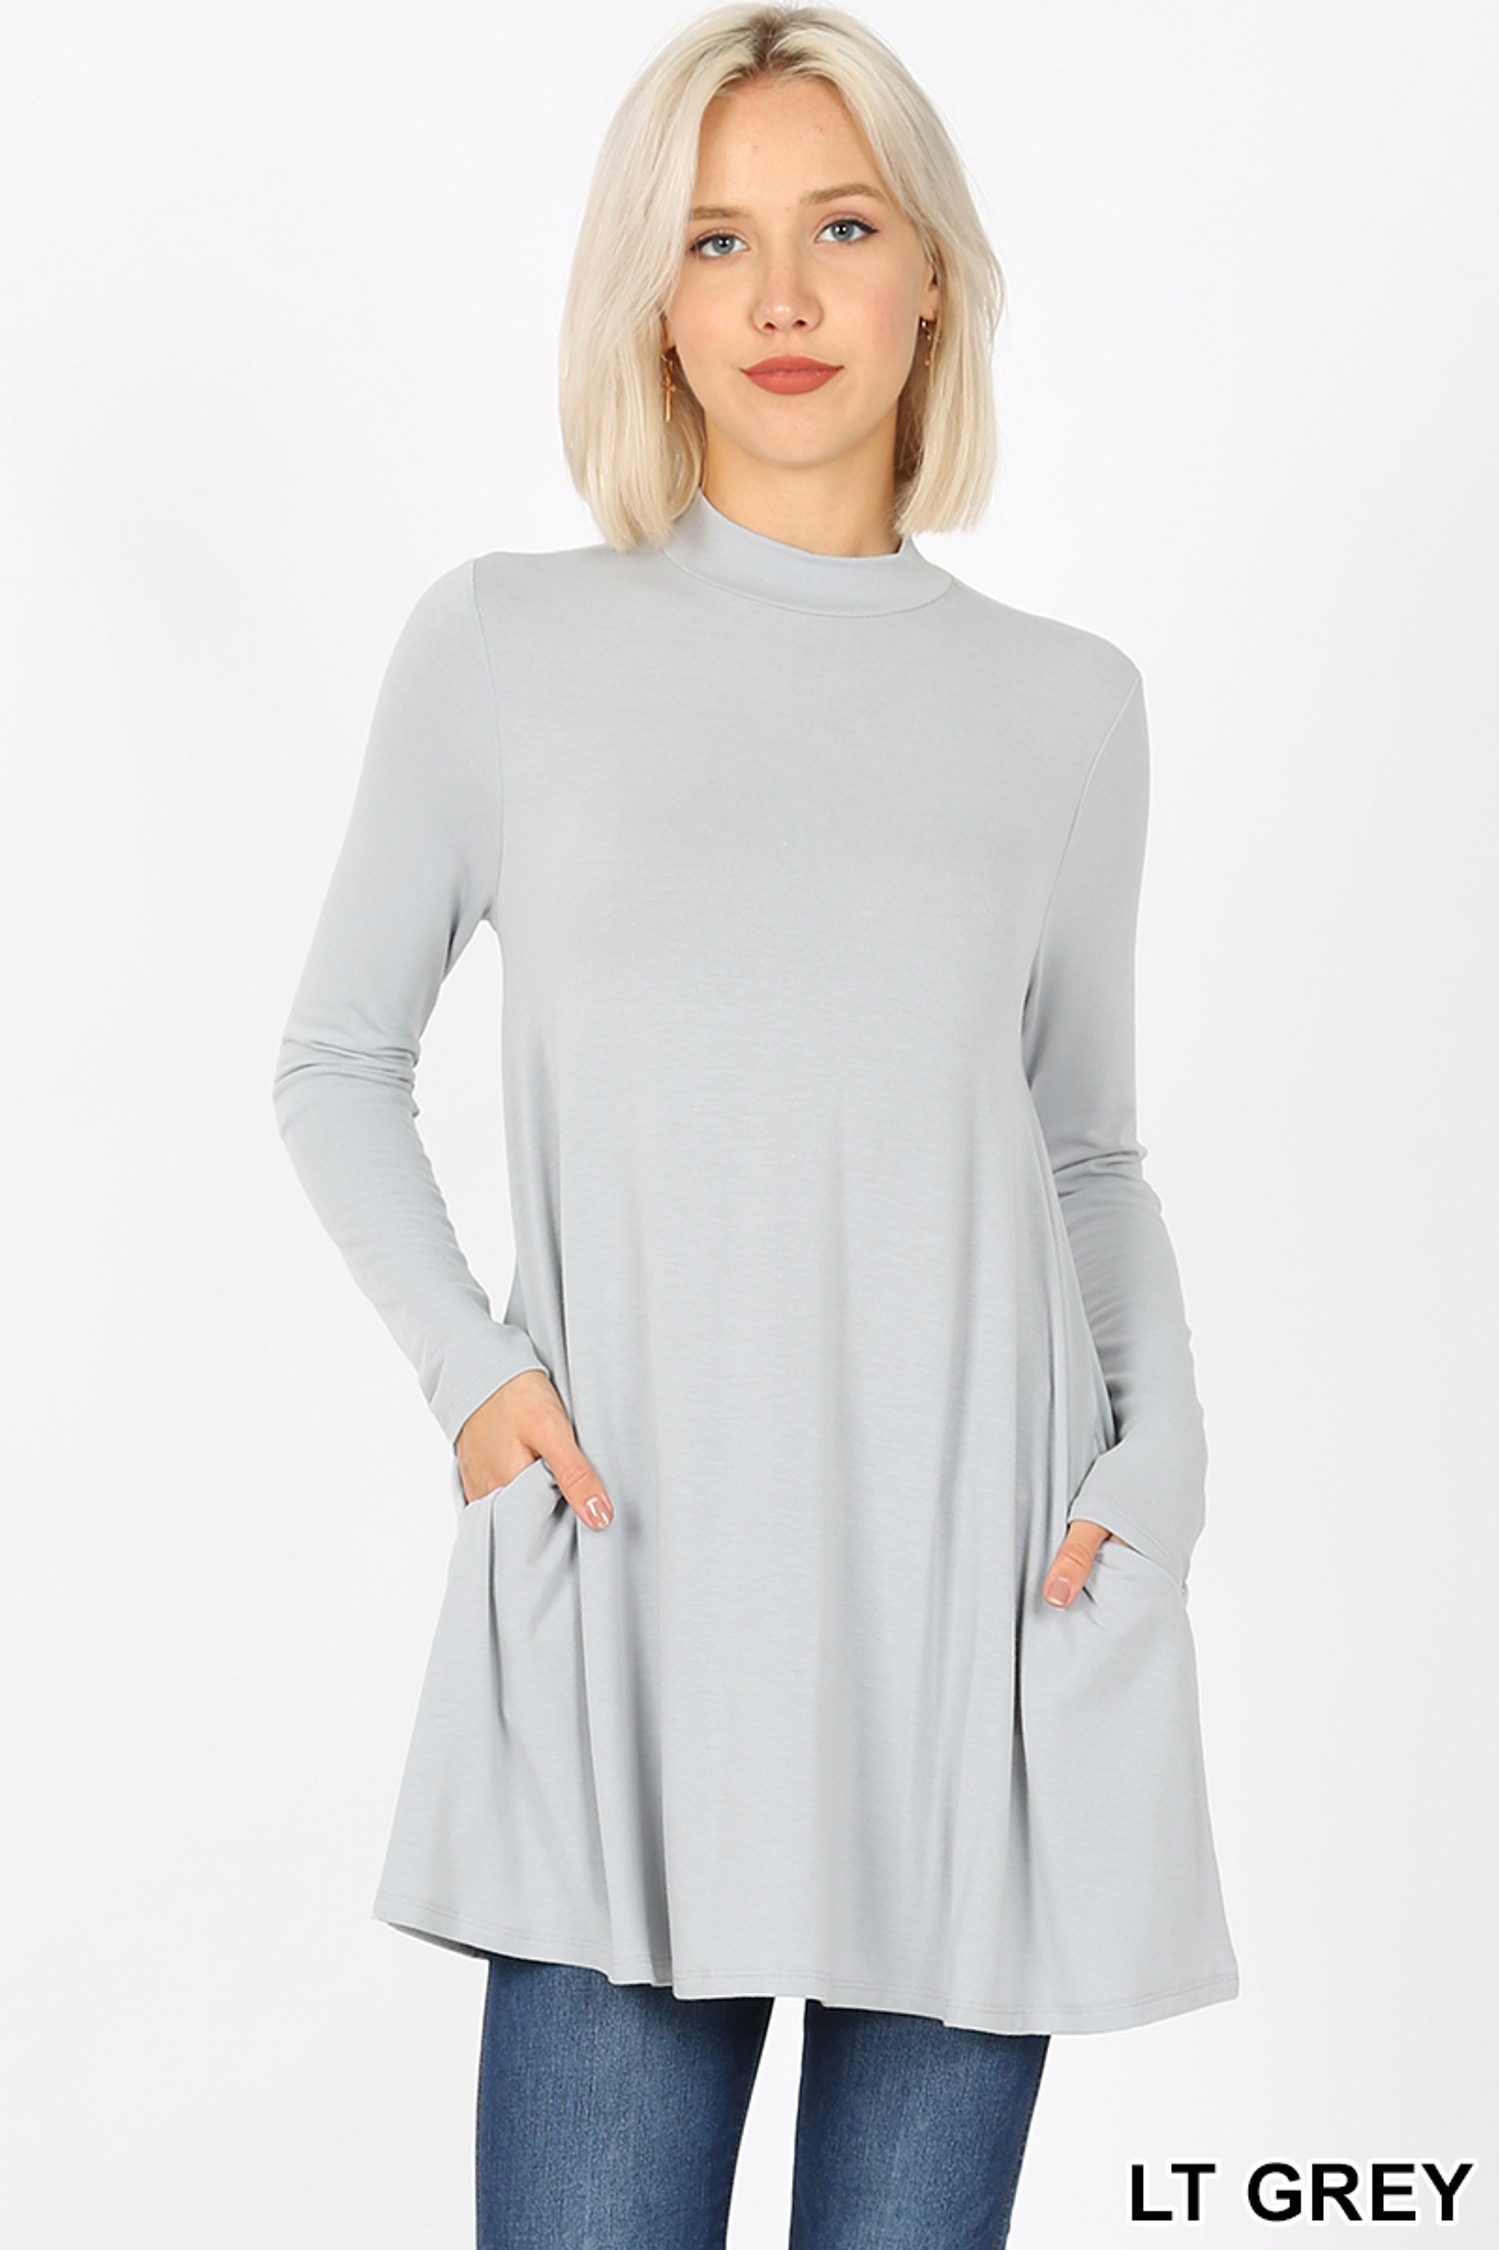 Front image of Lt Grey Long Sleeve Mock Neck Top with Pockets